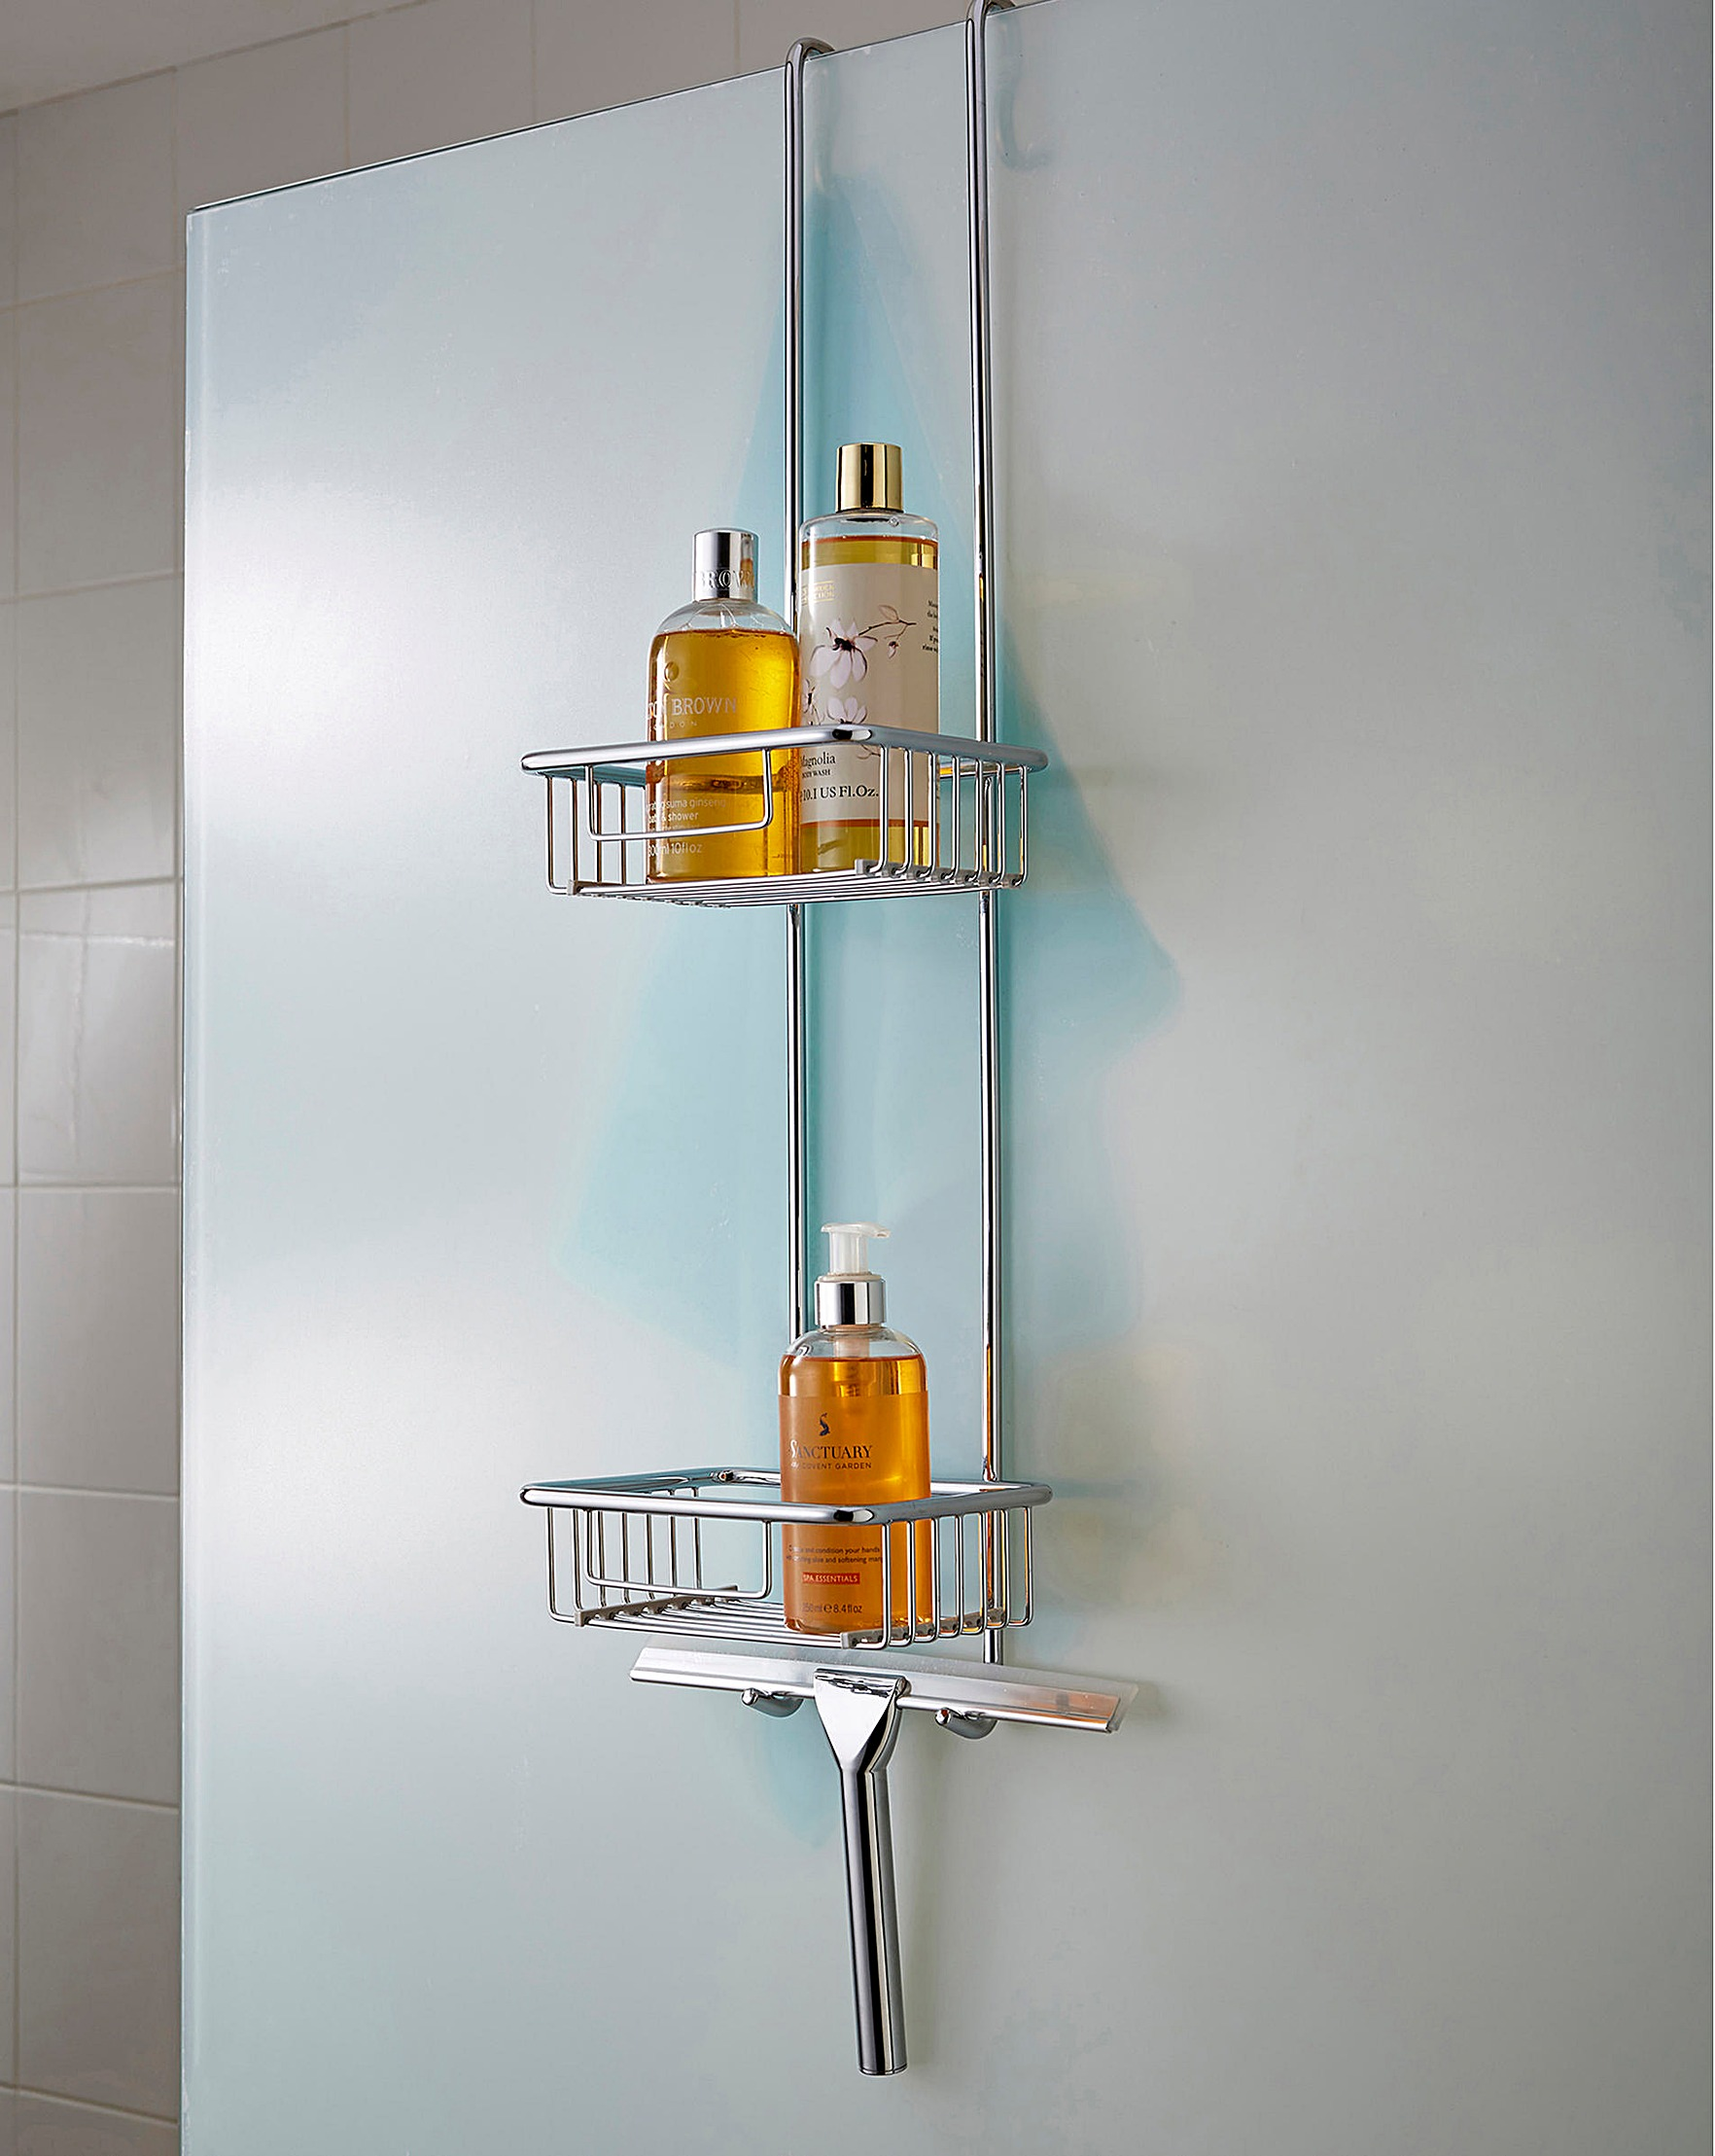 Shower Caddy with Squeegee | House of Bath